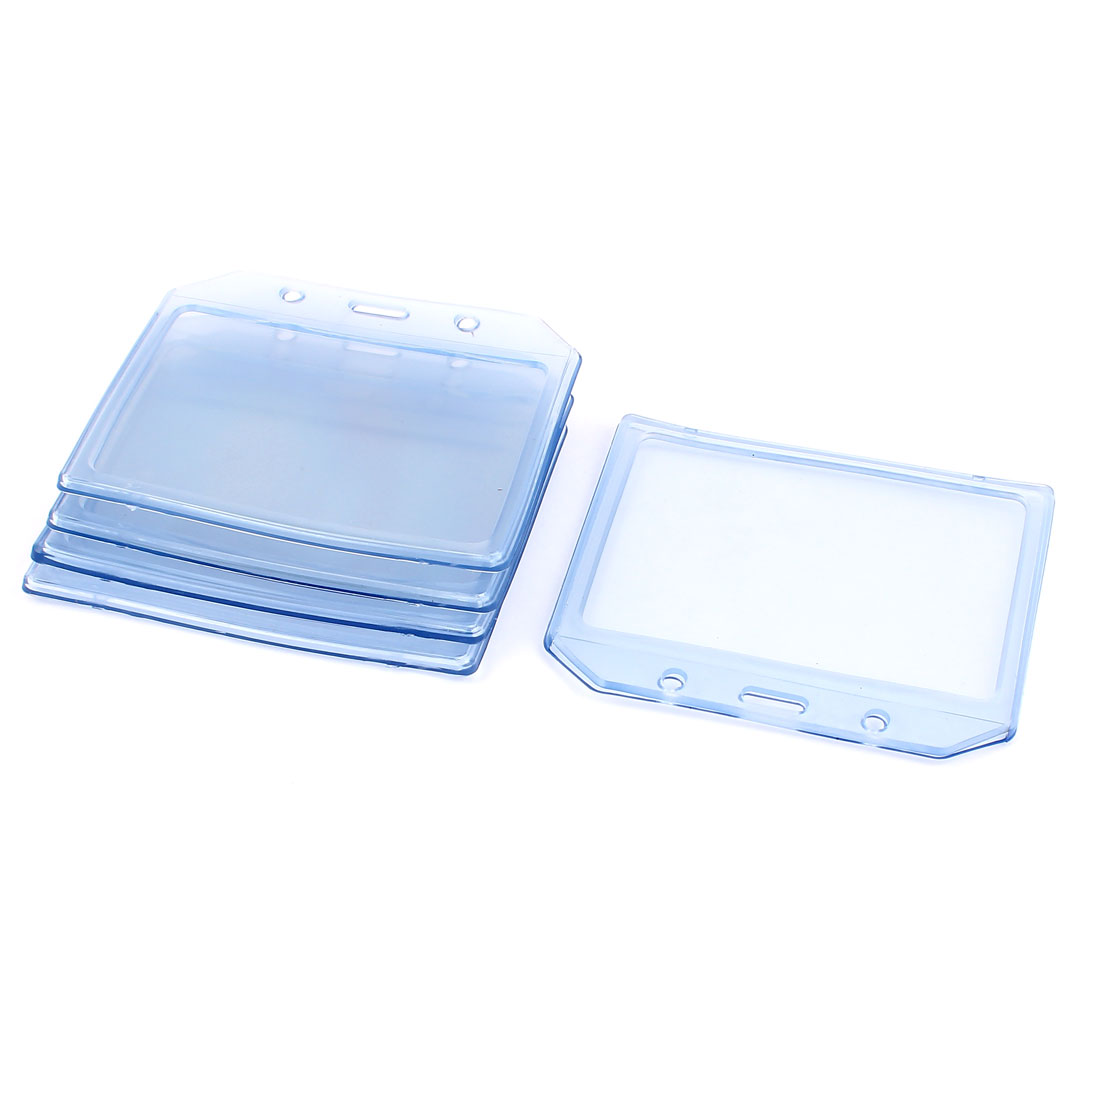 5 Pcs 112mmx93mm Plastic Office Name Tag Bussiness ID Card Badge Holders Clear